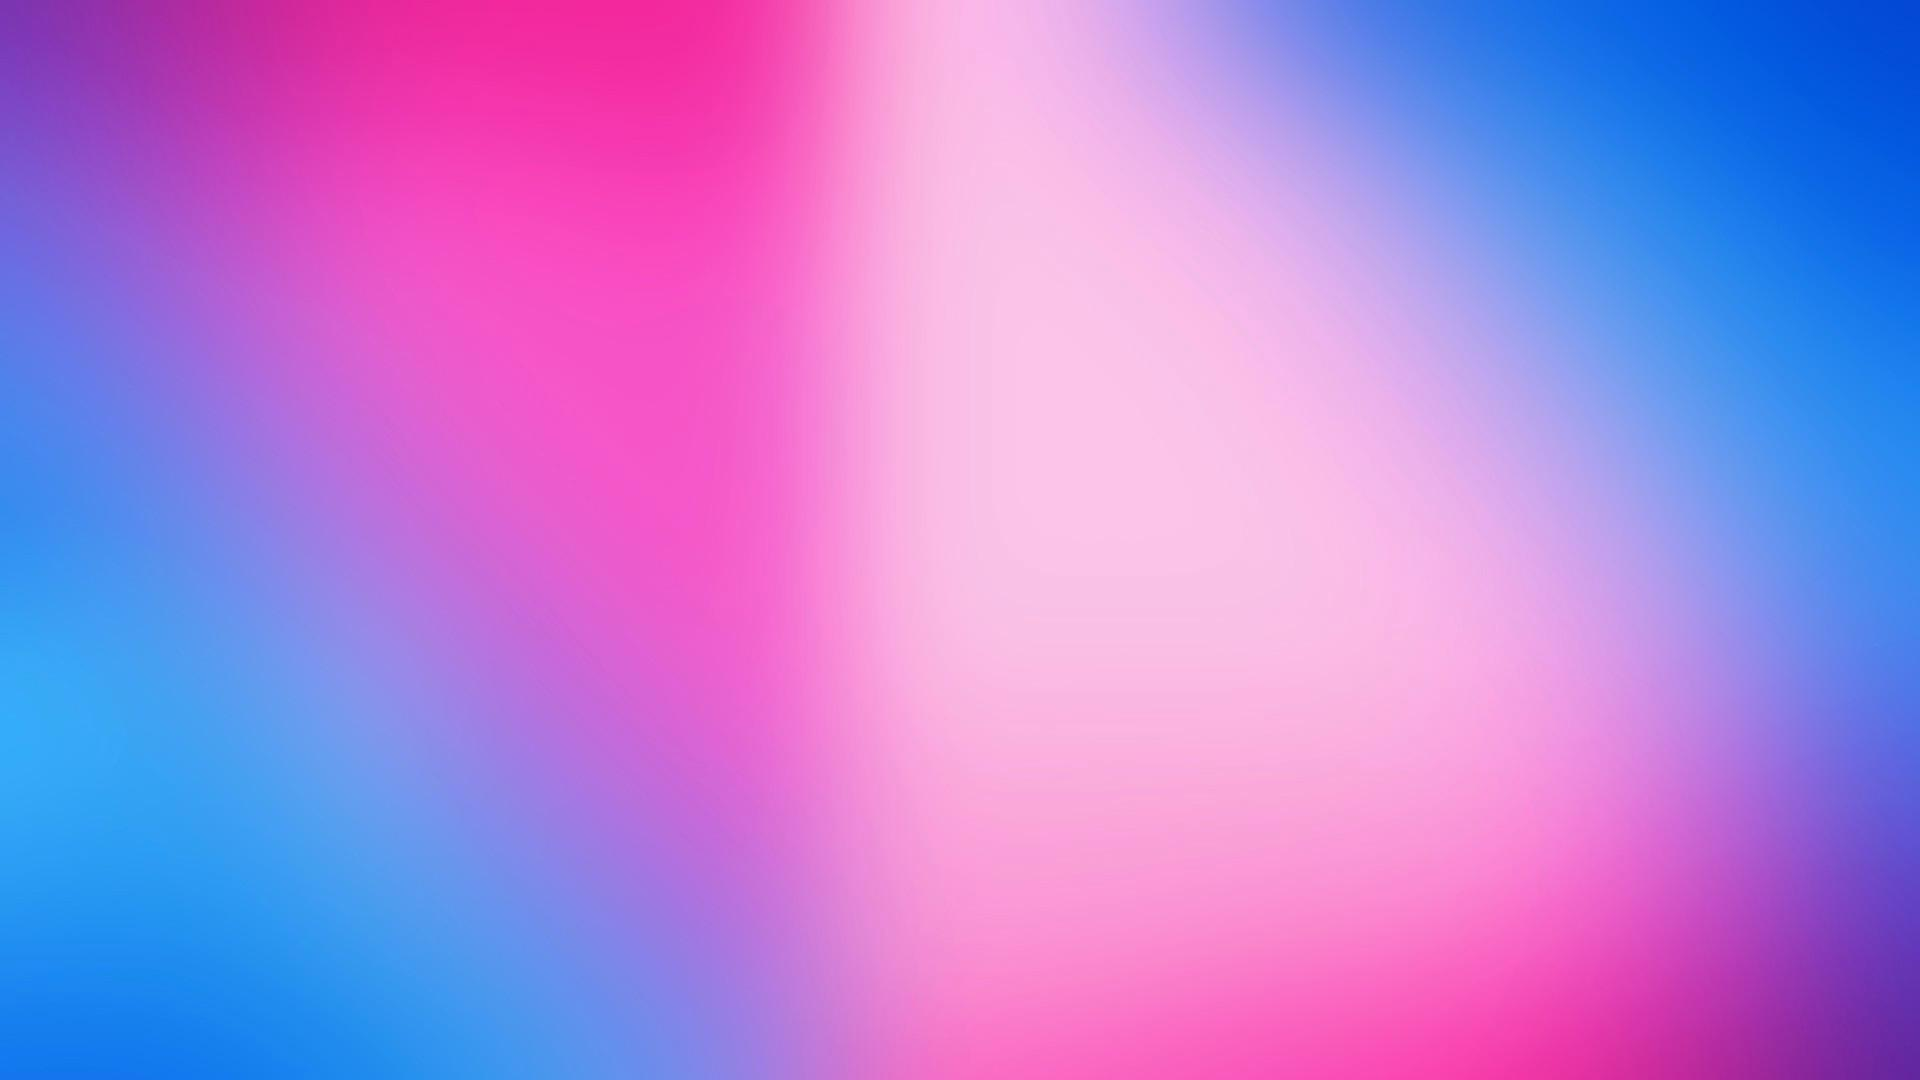 Pink Purple Wallpapers Cool Pink Purple Backgrounds Superb 1920x1080